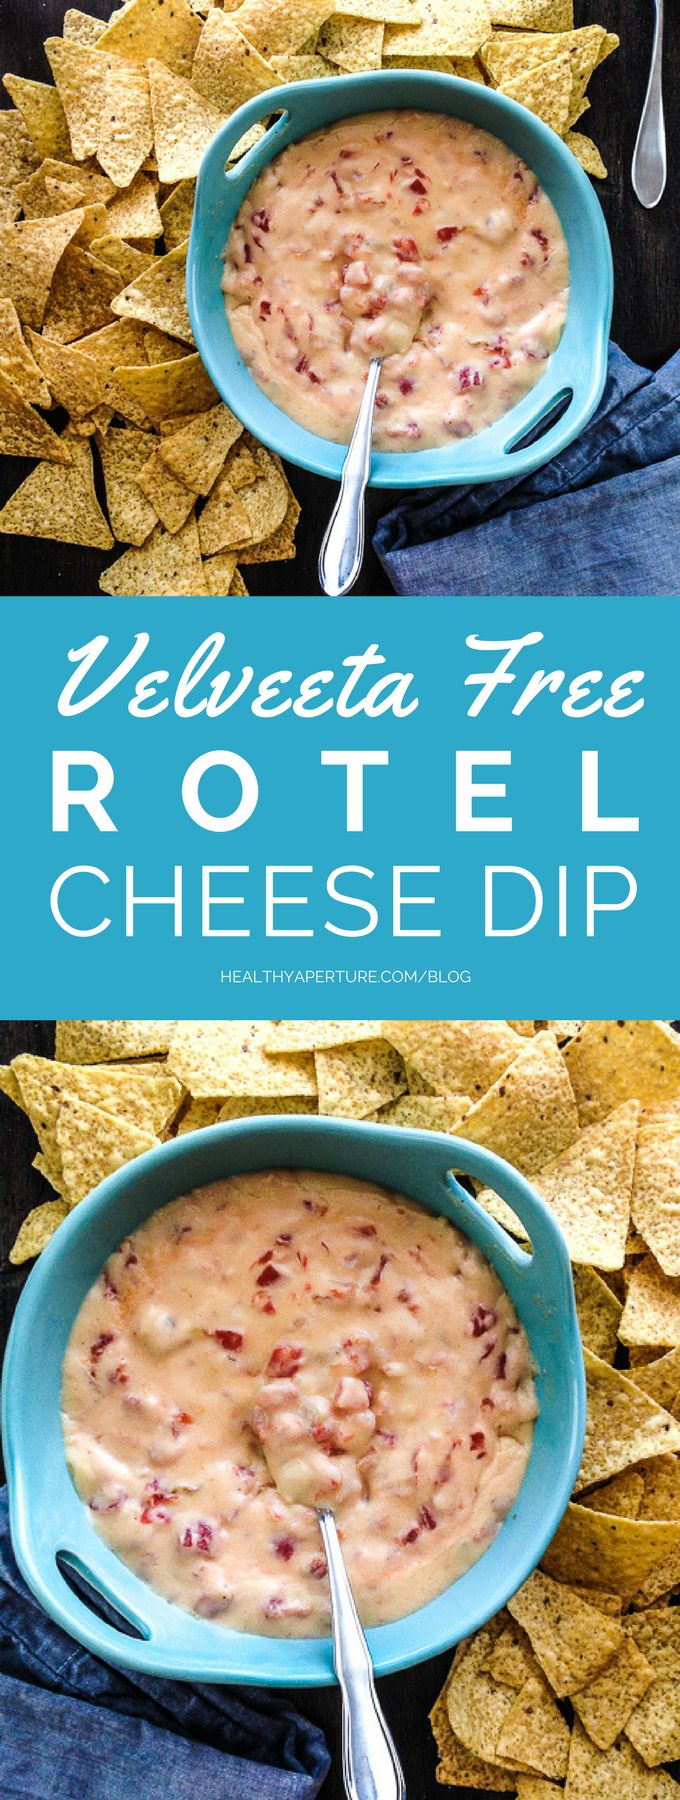 Cheddar, chili powder, milk and Rotel tomatoes are all you need for this Velveeta Free Rotel Cheese Dip!